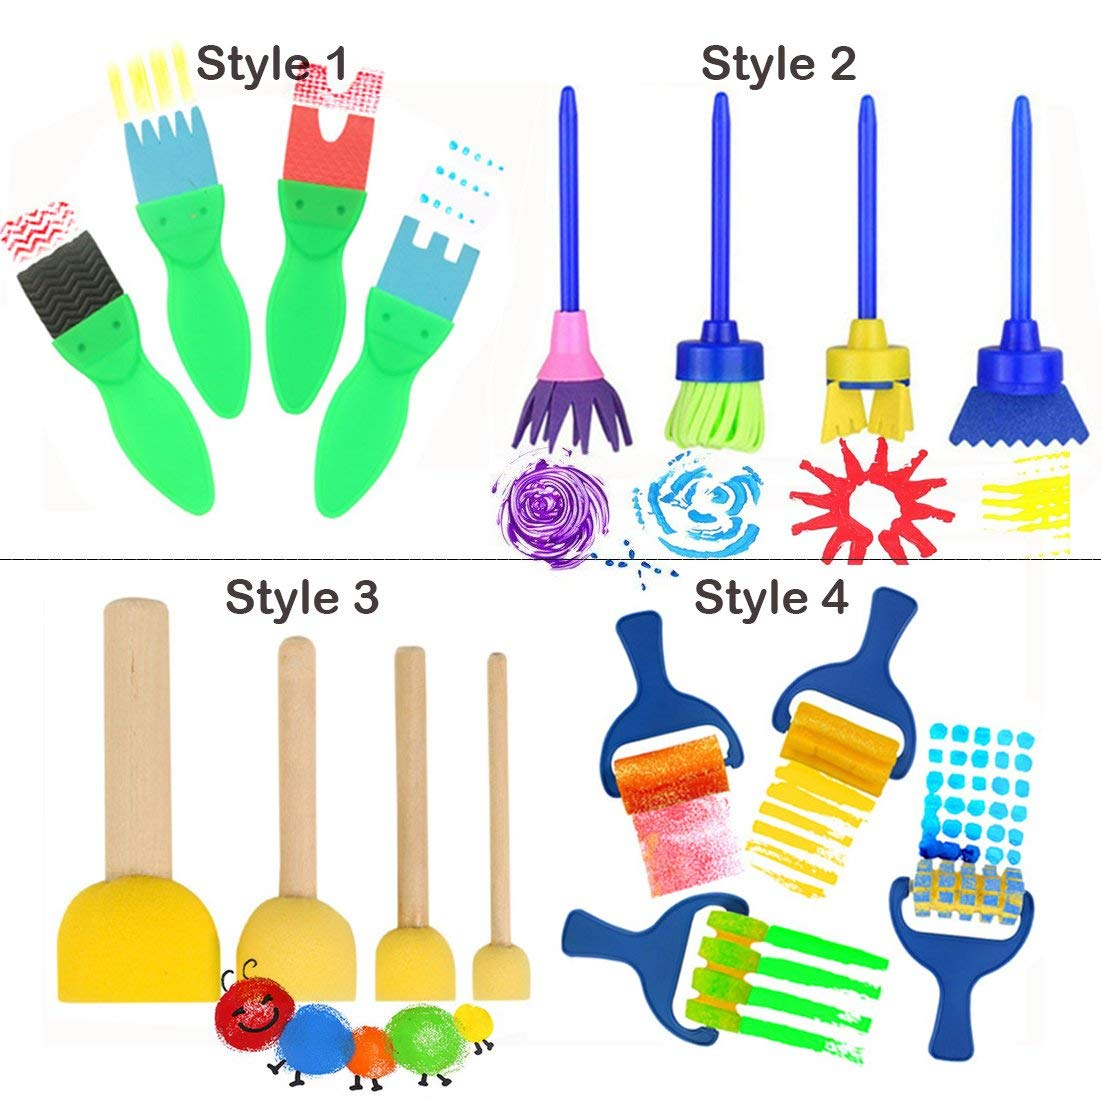 16 PCS - Paint Brushes for Kids, Artist Paint Texture Brushes - Early Learning Graffiti Paint Brush EVA Sponges Foam Painting Tools Set for Kids Painting Drawing Crafts and DIY